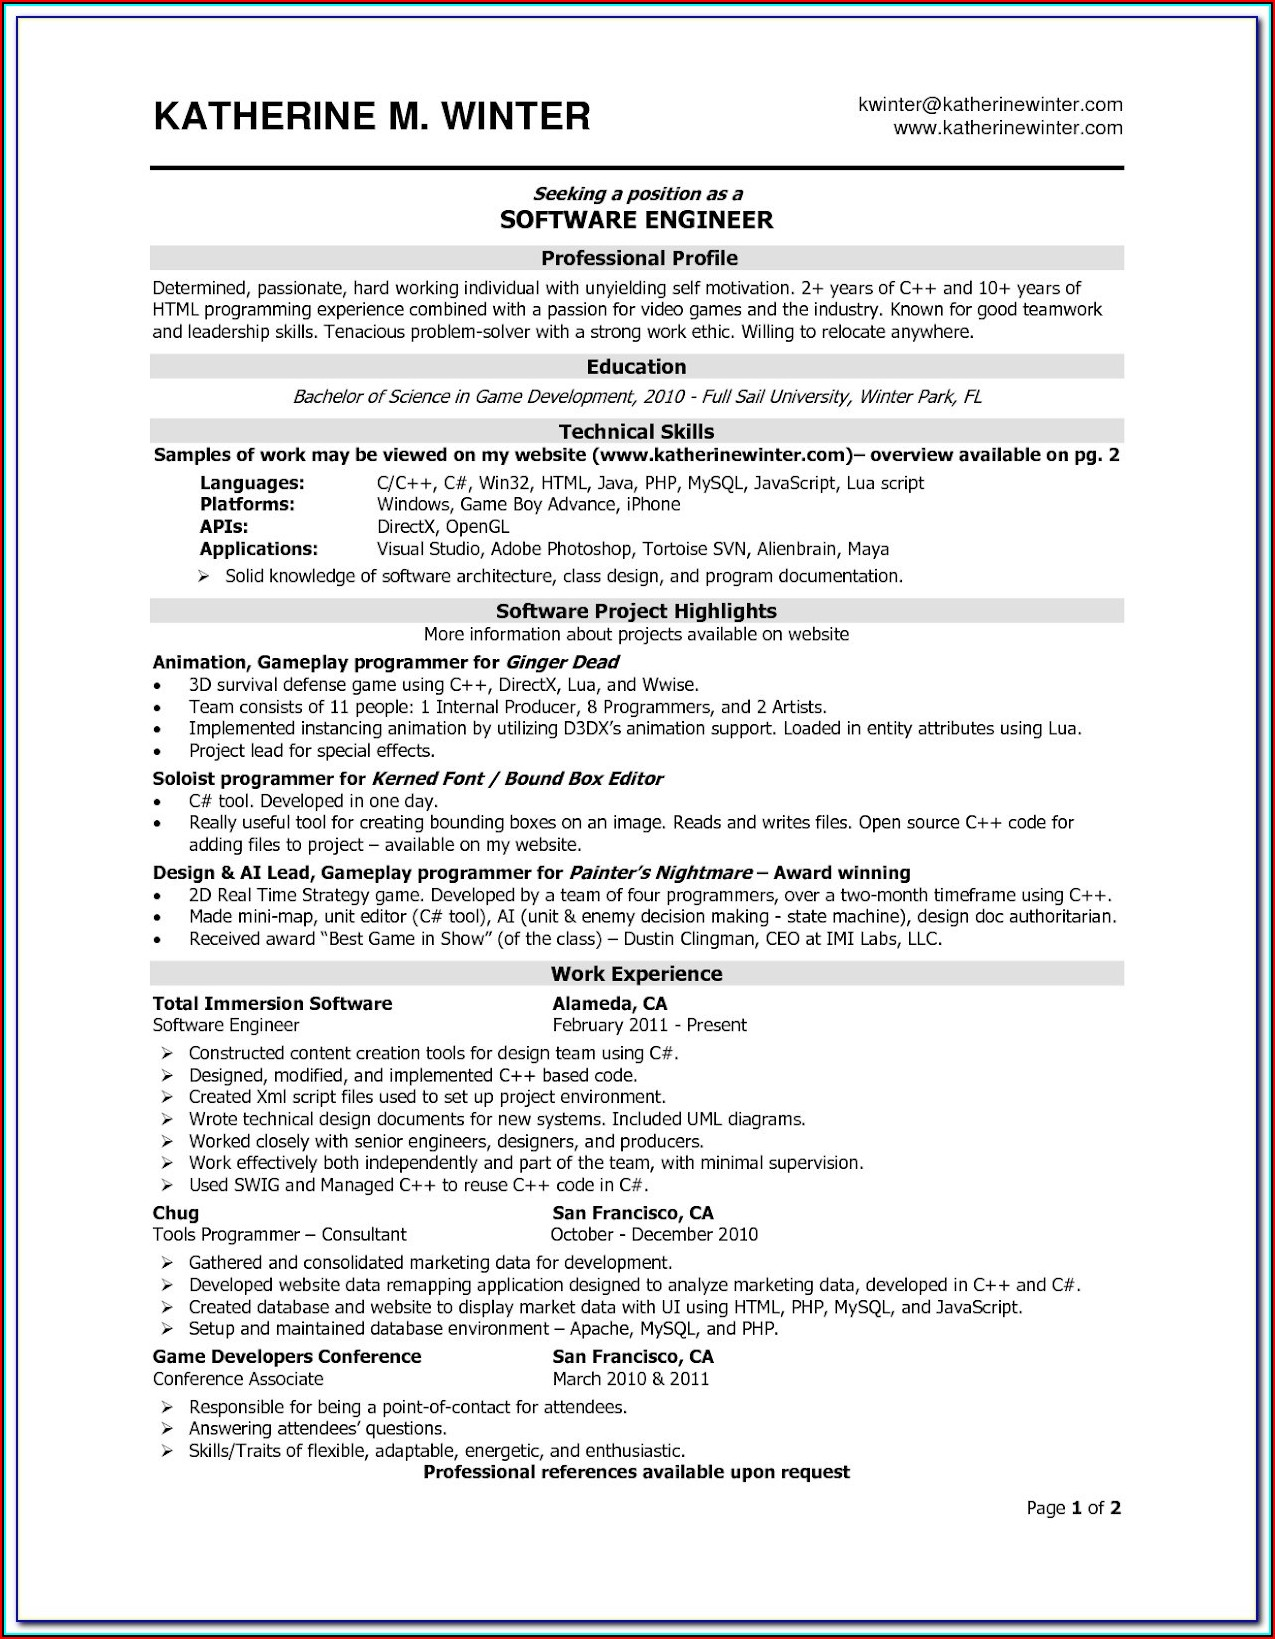 Appraisal Form Filling Software Developer